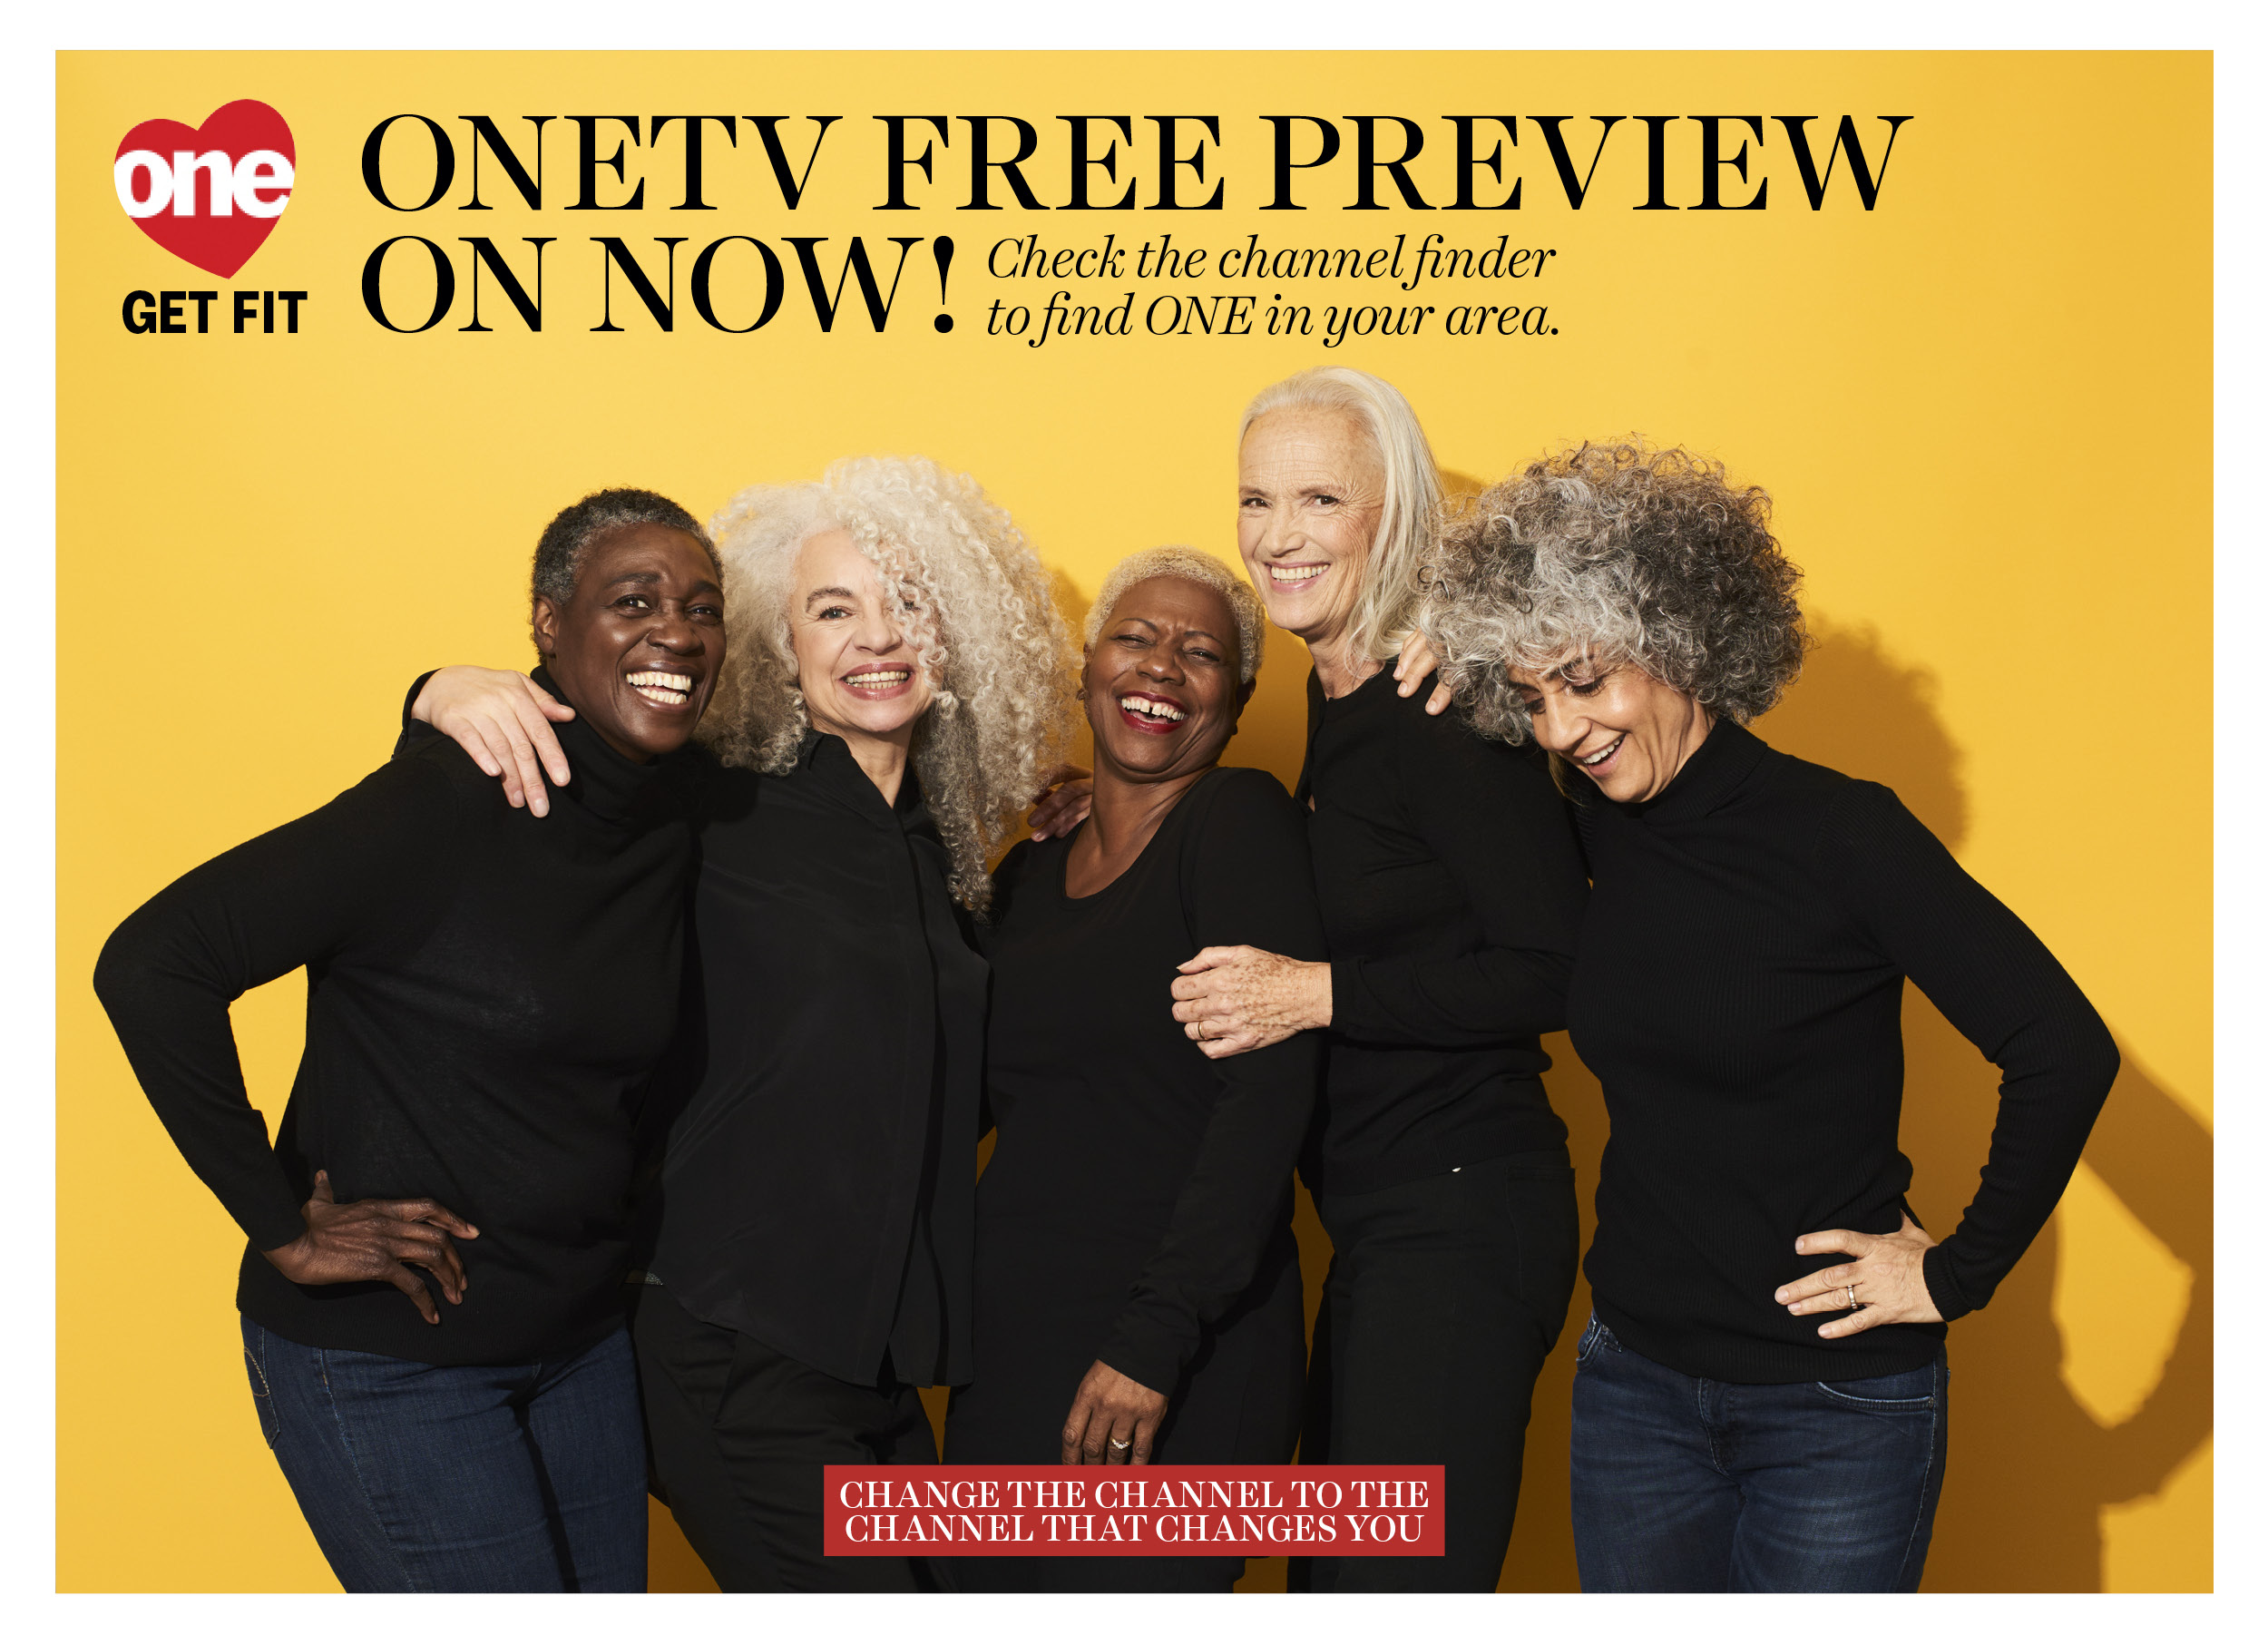 ONETV Free Preview